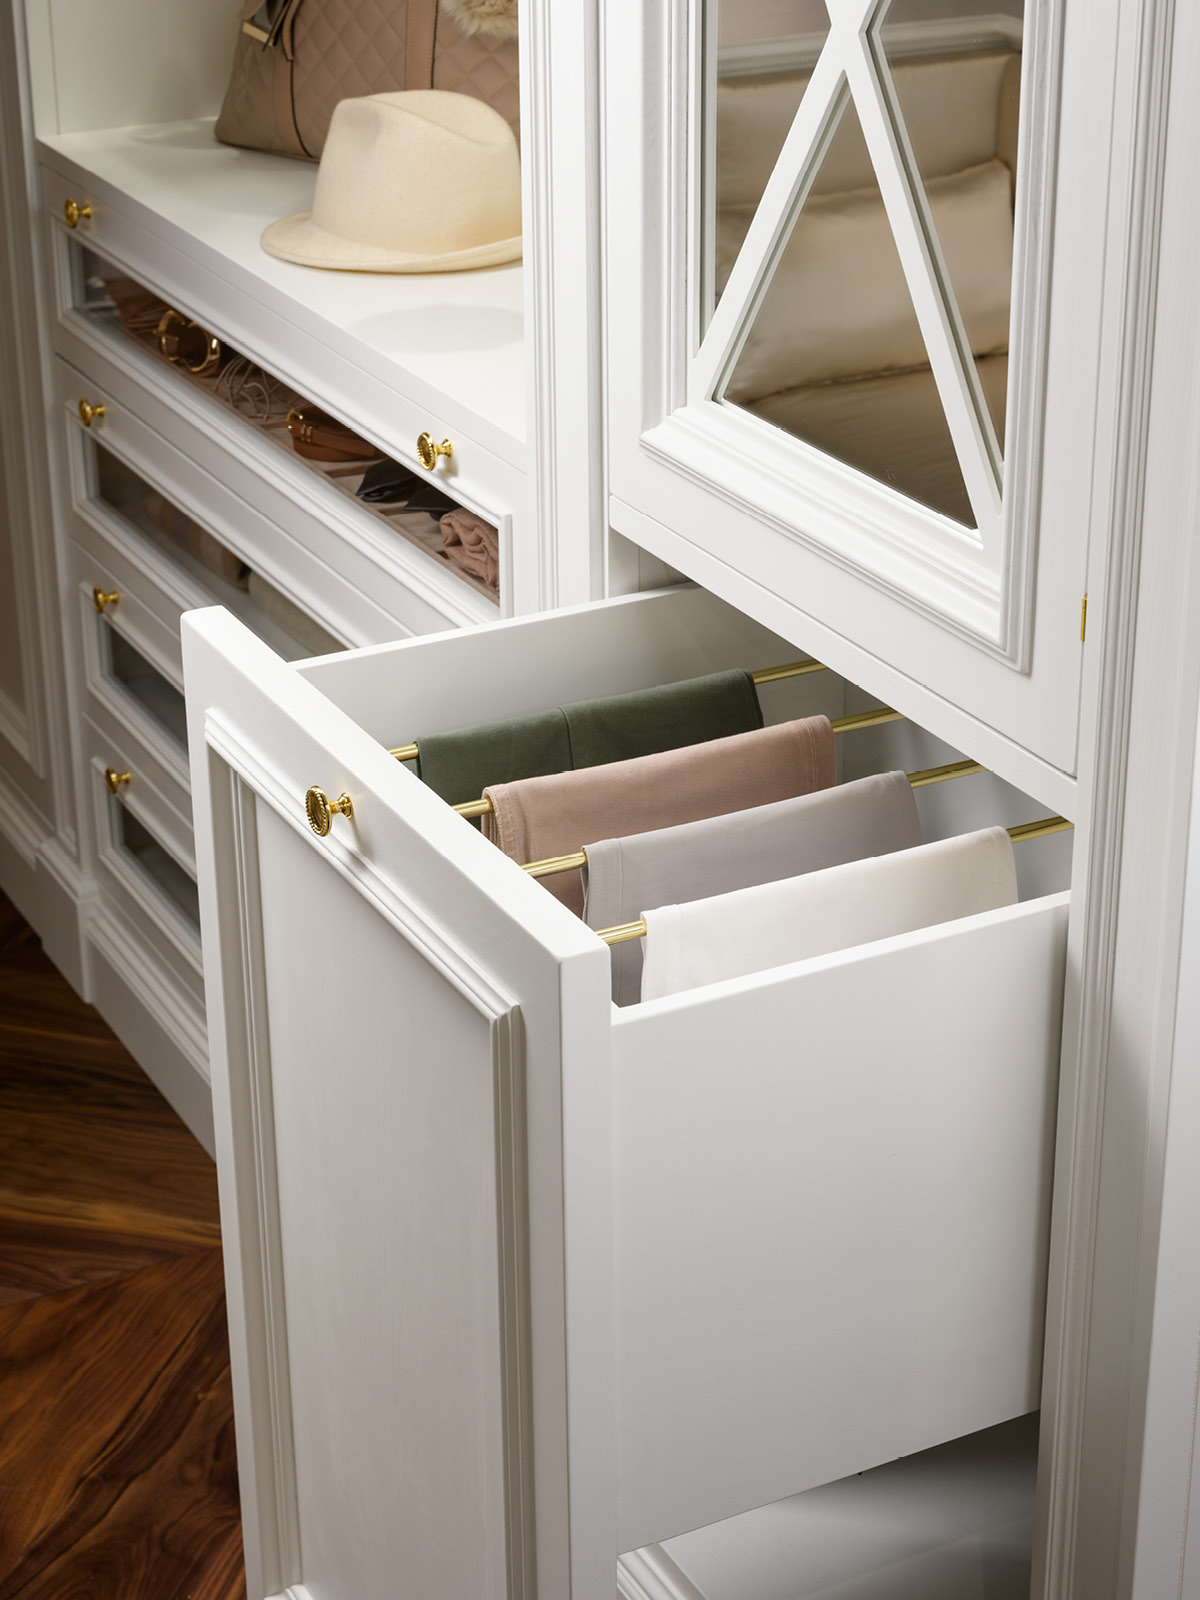 Detail of pull out drawer with pants holder